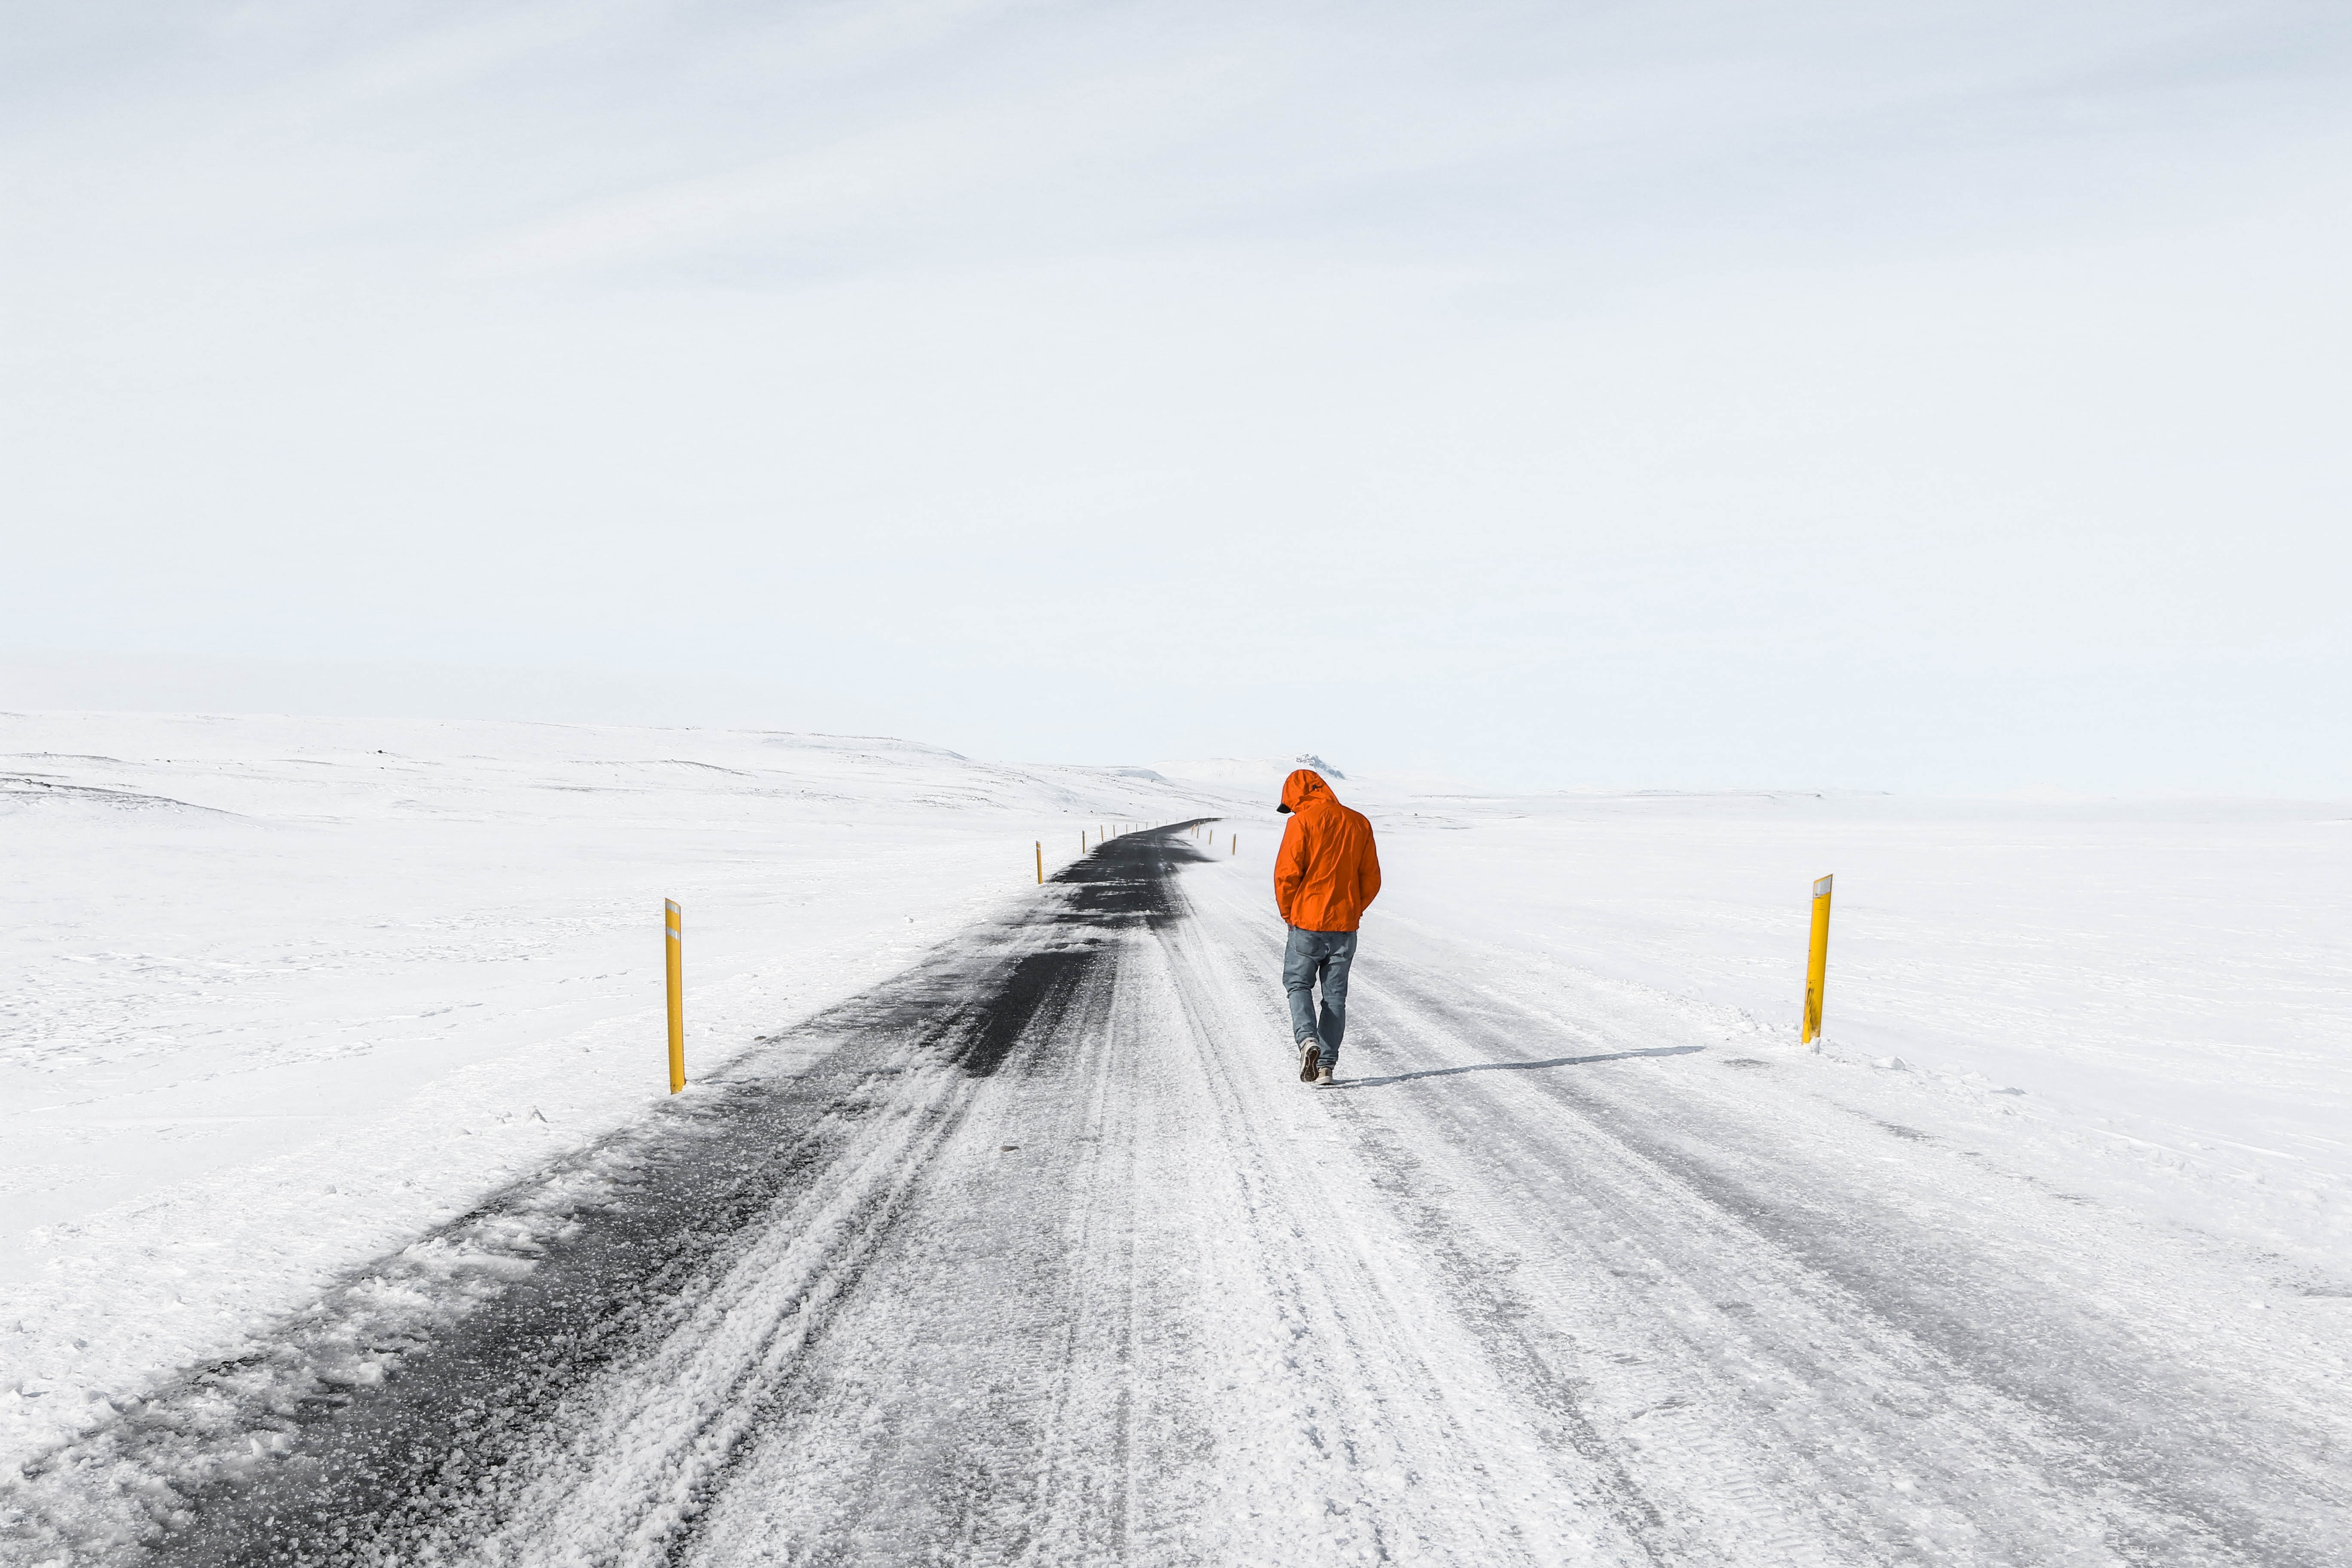 man walking on snowy road